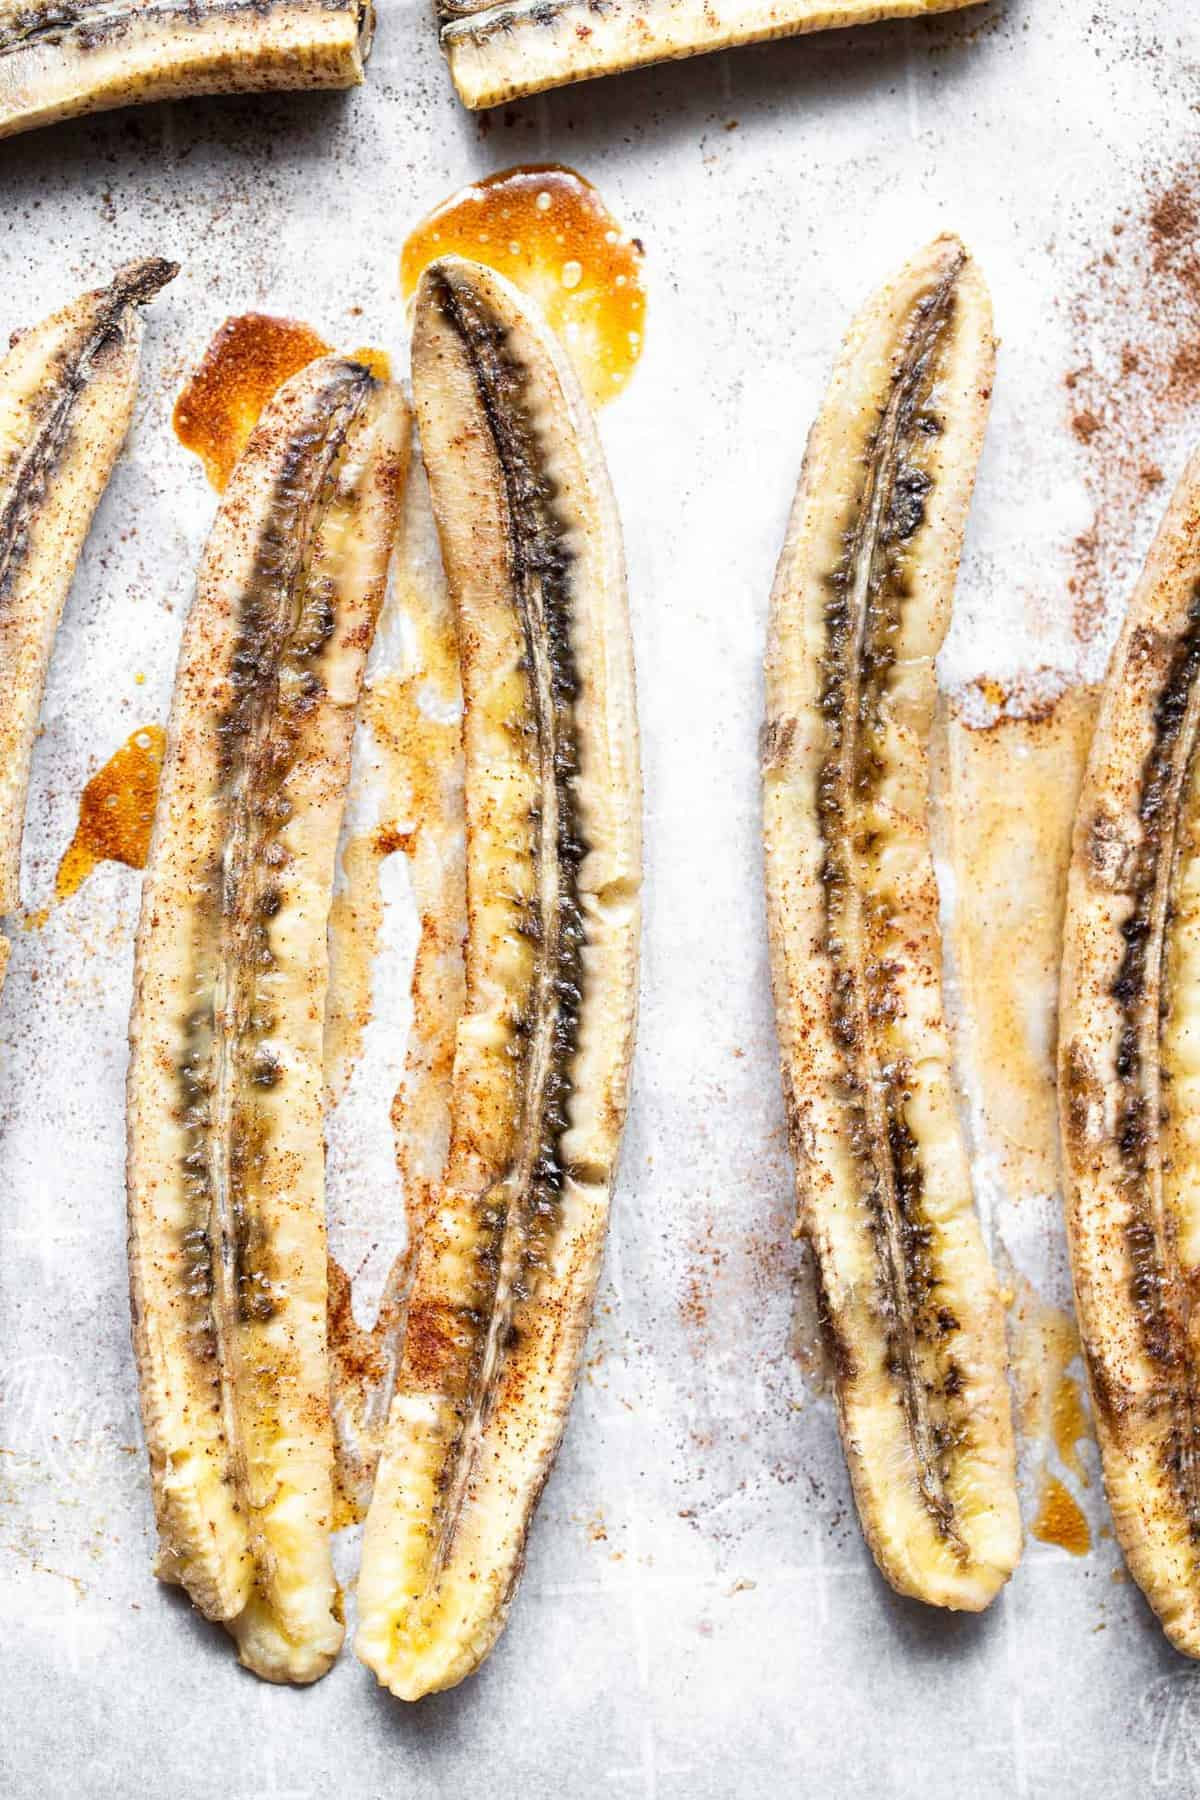 roasted bananas on a cookie sheet